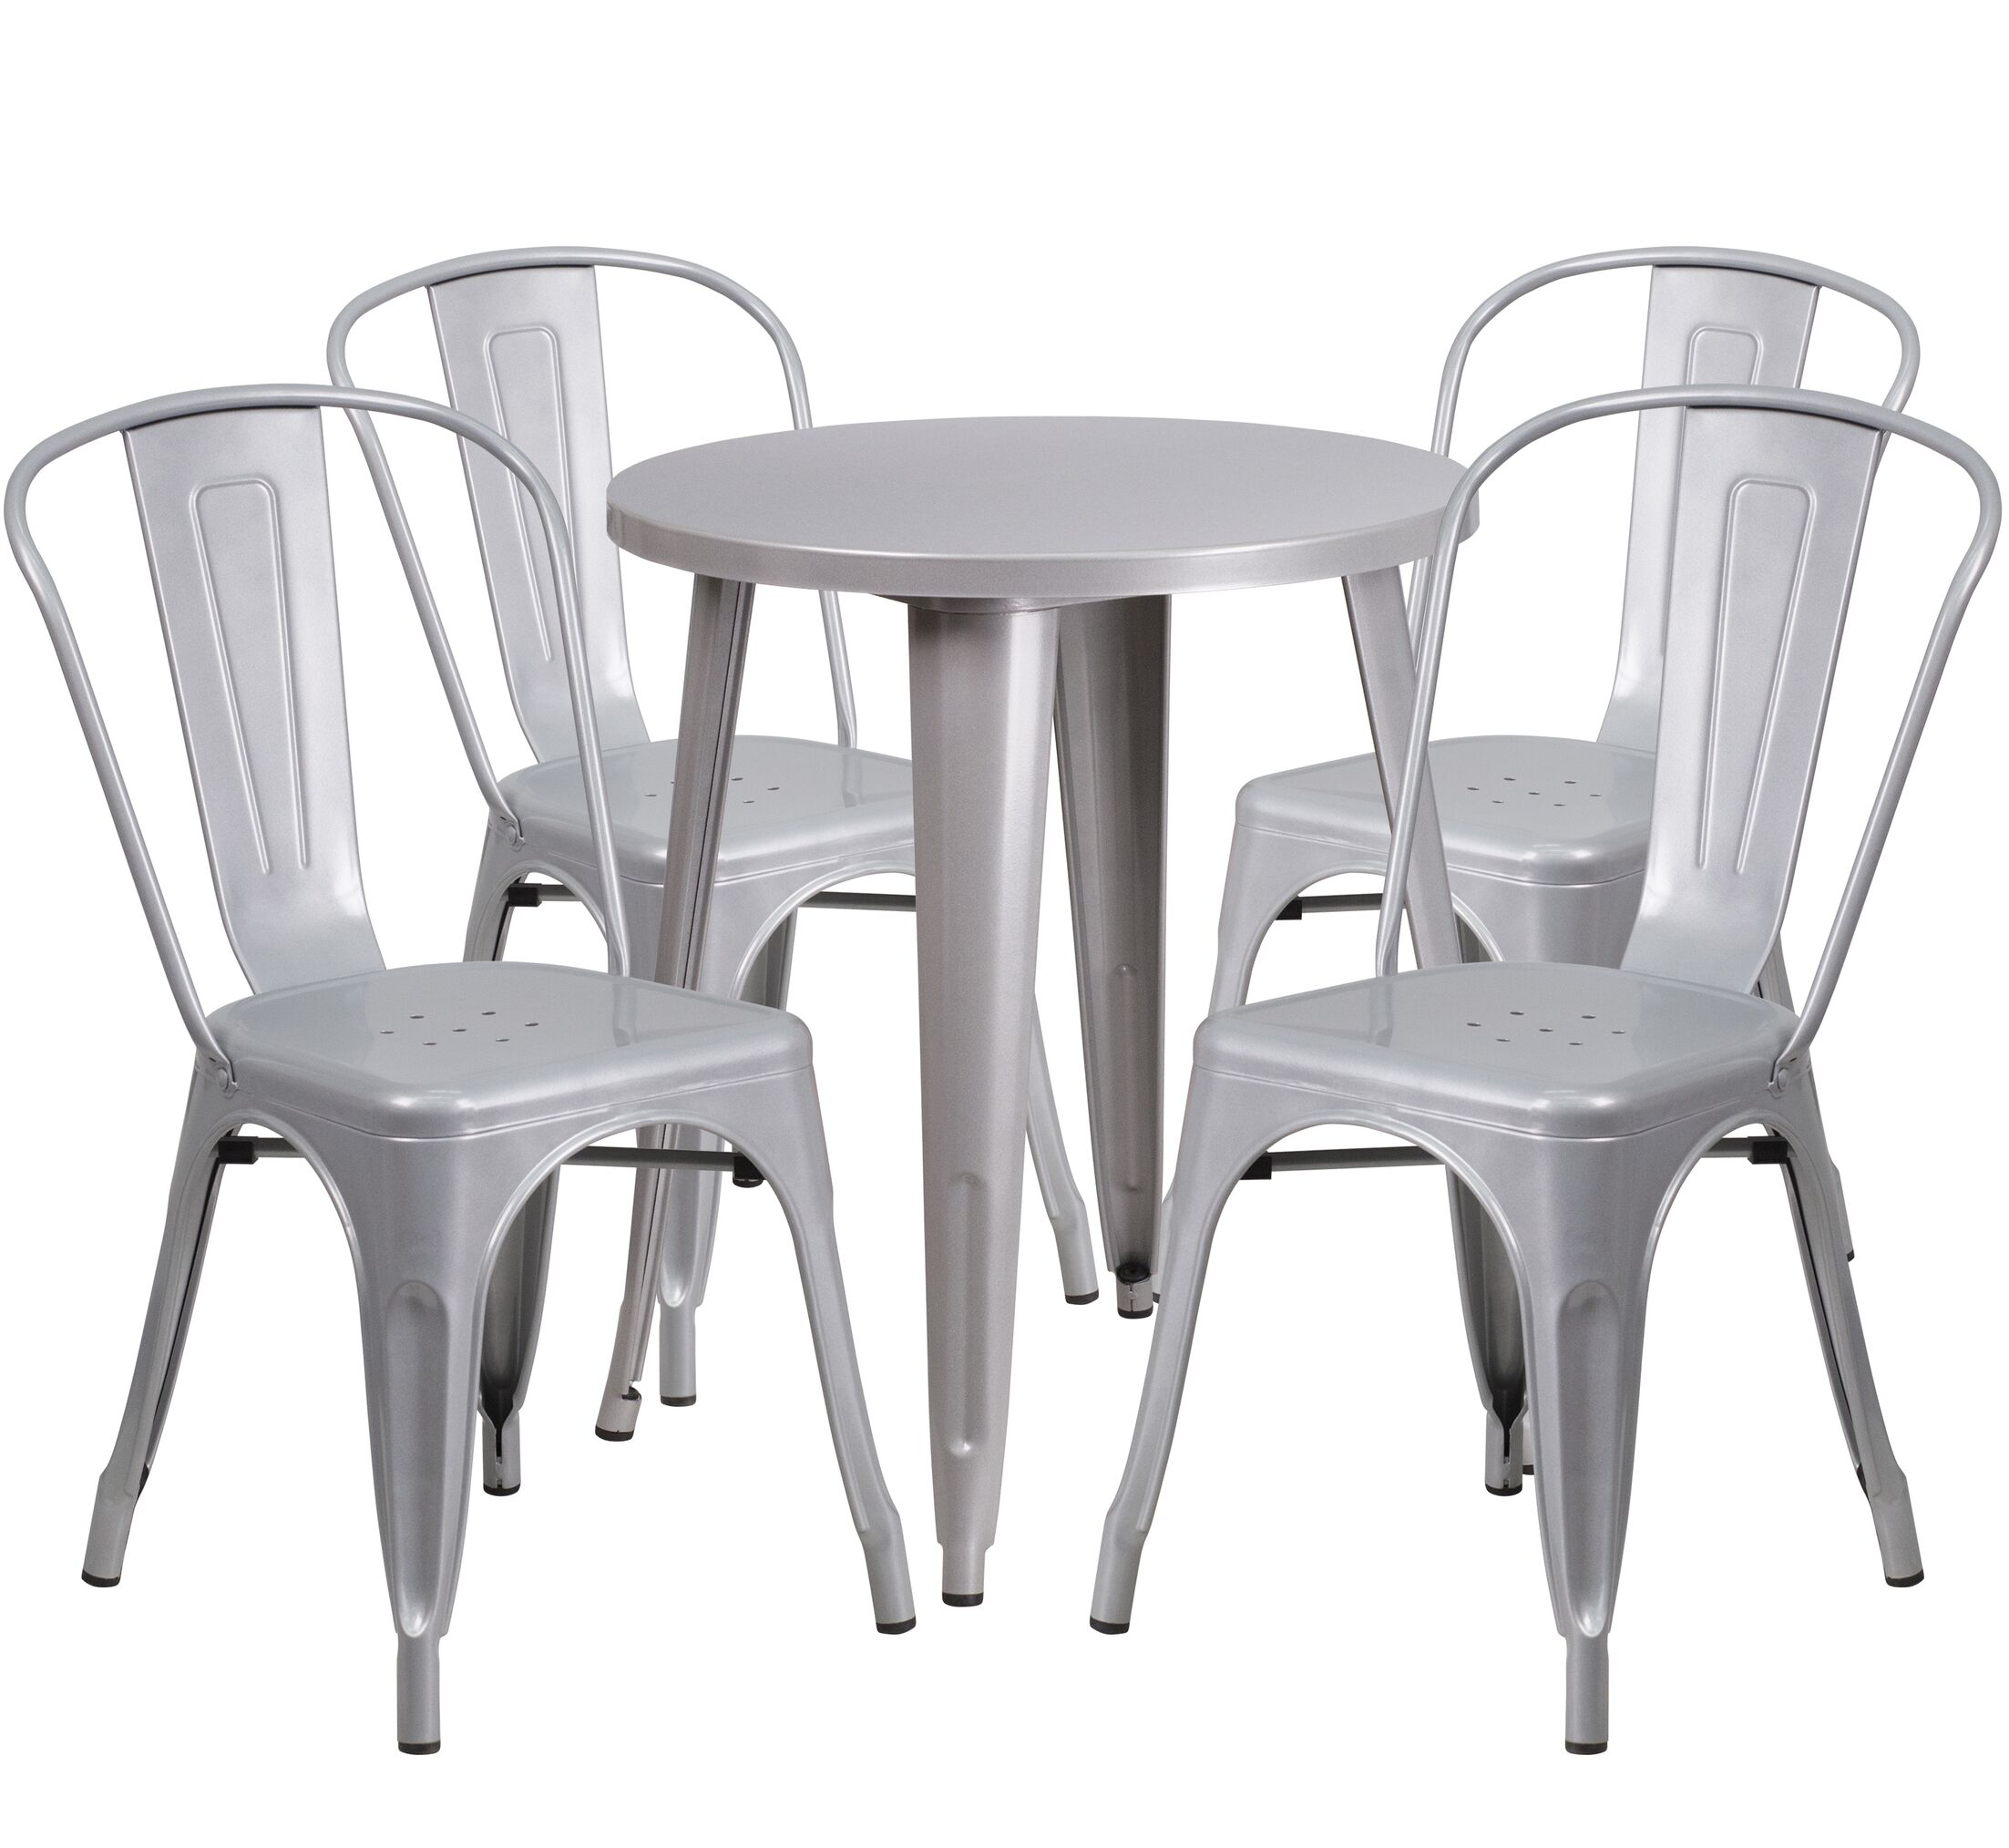 Aragon Metal Indoor/Outdoor 5 Piece Dining Set Finish: Silver